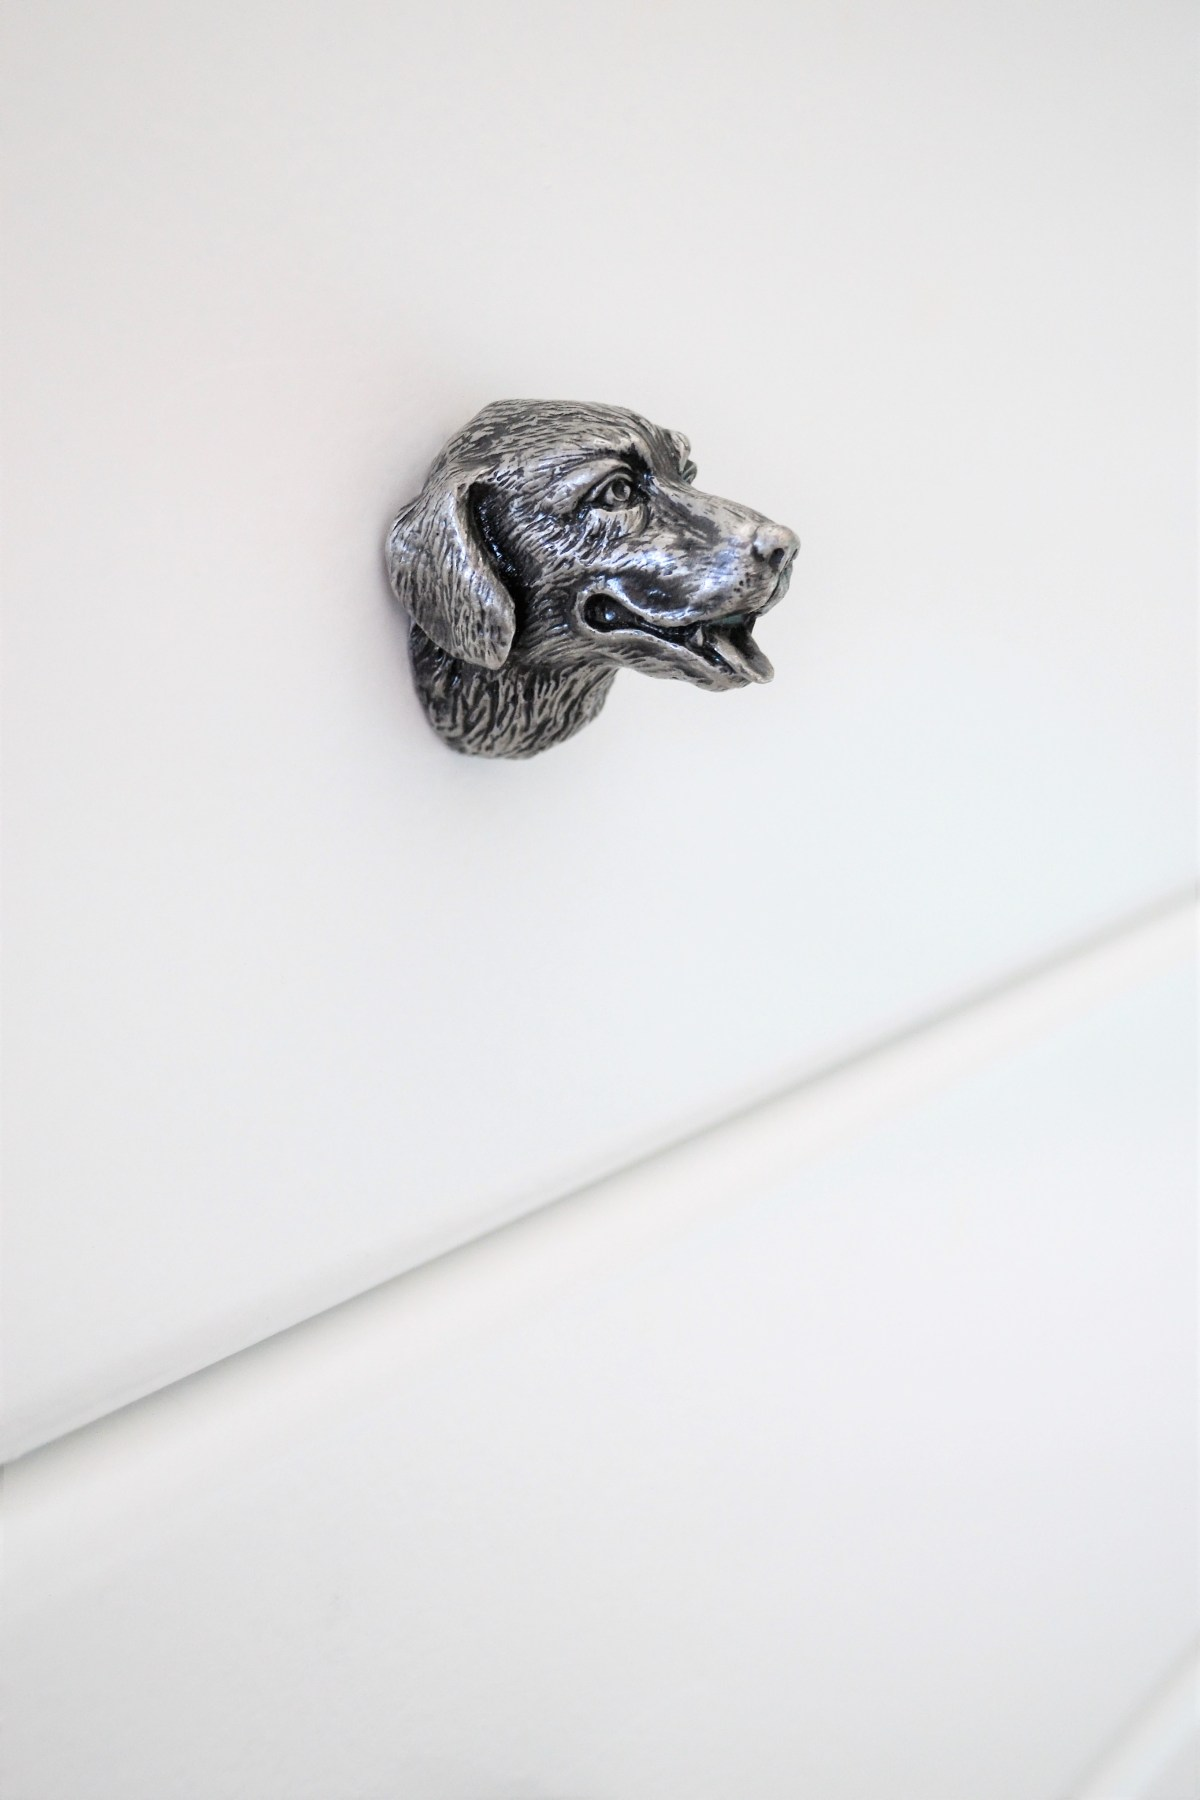 How to decorate your kids room with silver accents - puppy dresser pulls